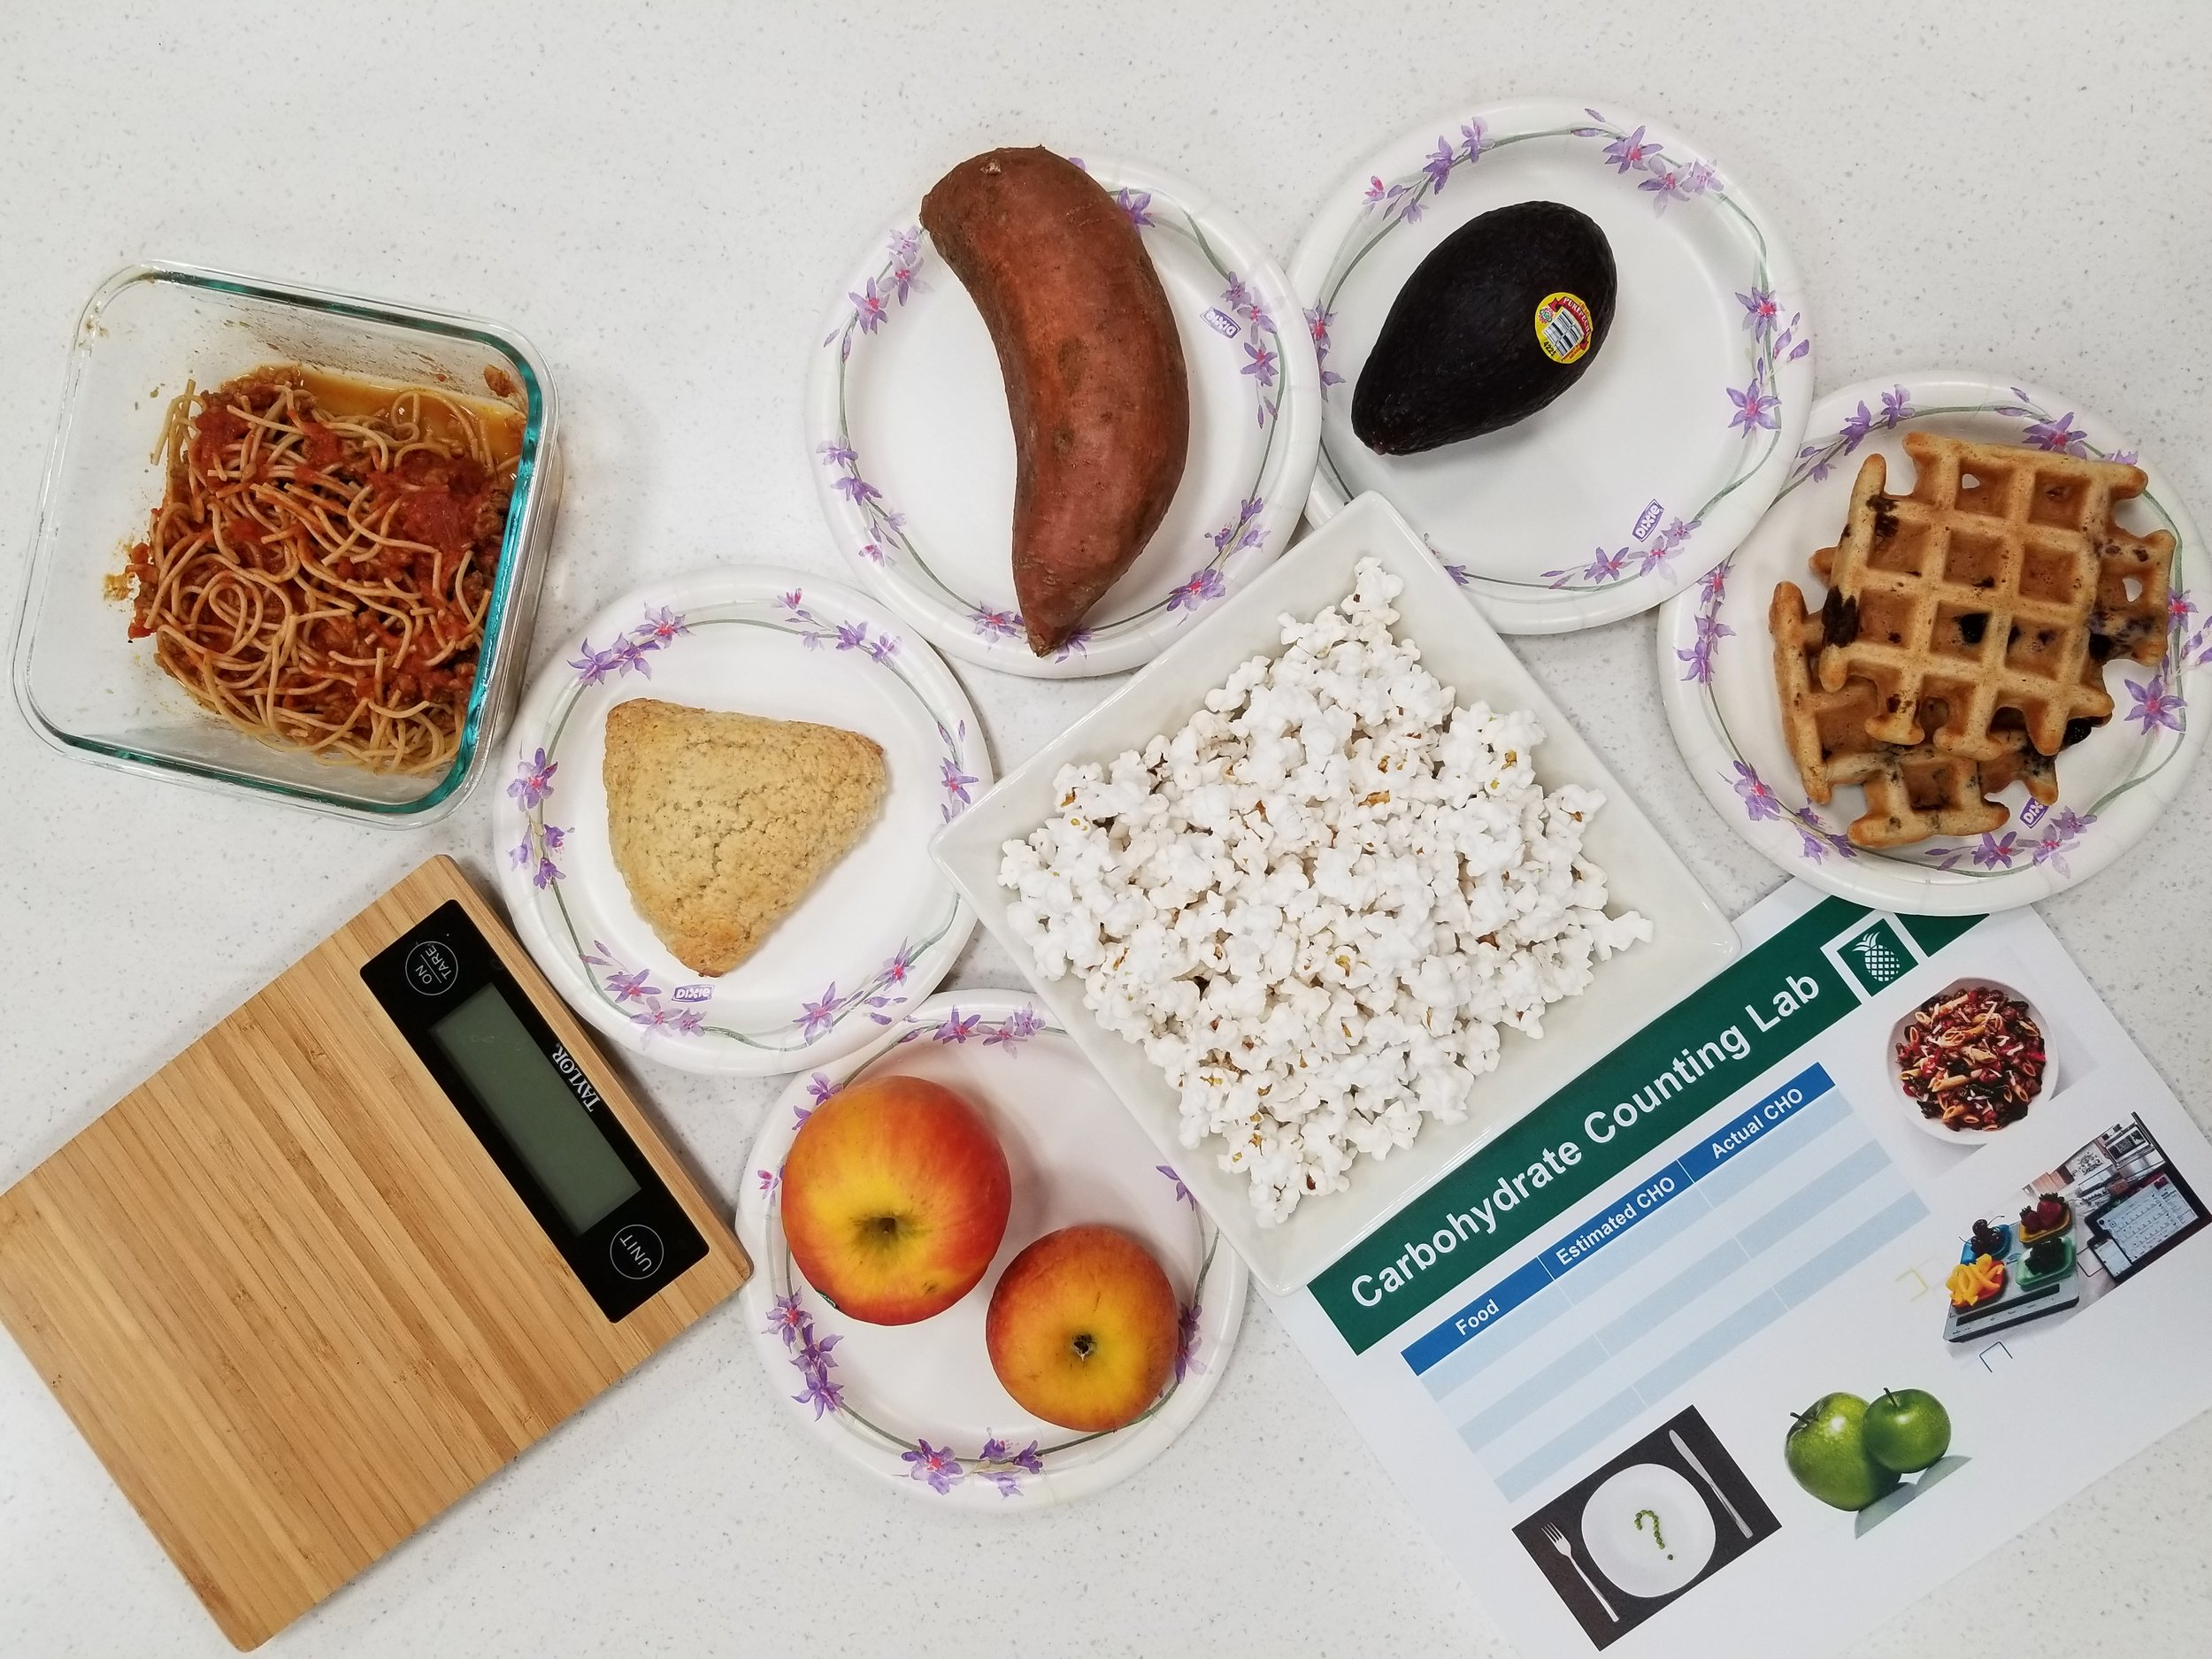 Carb Counting Lab - how well do you carb count??